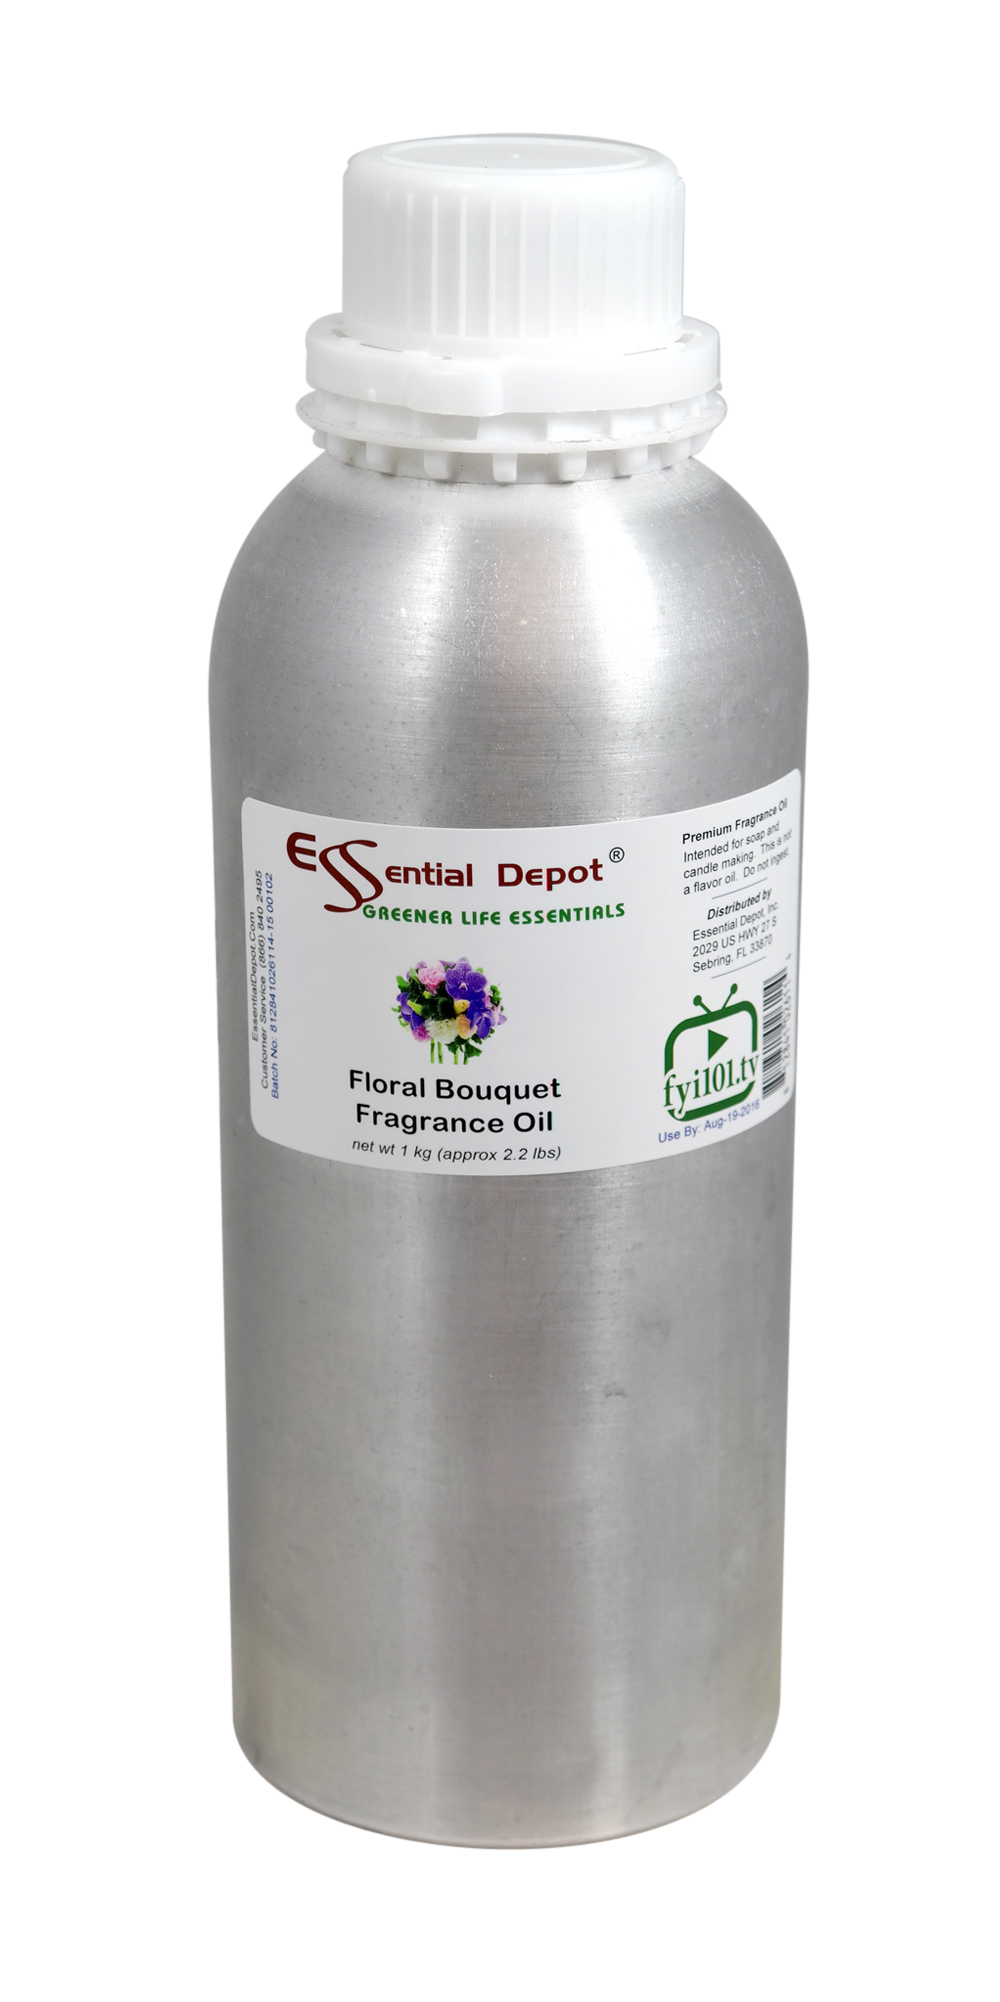 Floral Bouquet Fragrance Oil - 1 kg. - Approx 2.2 lbs. - FREE US SHIPPING